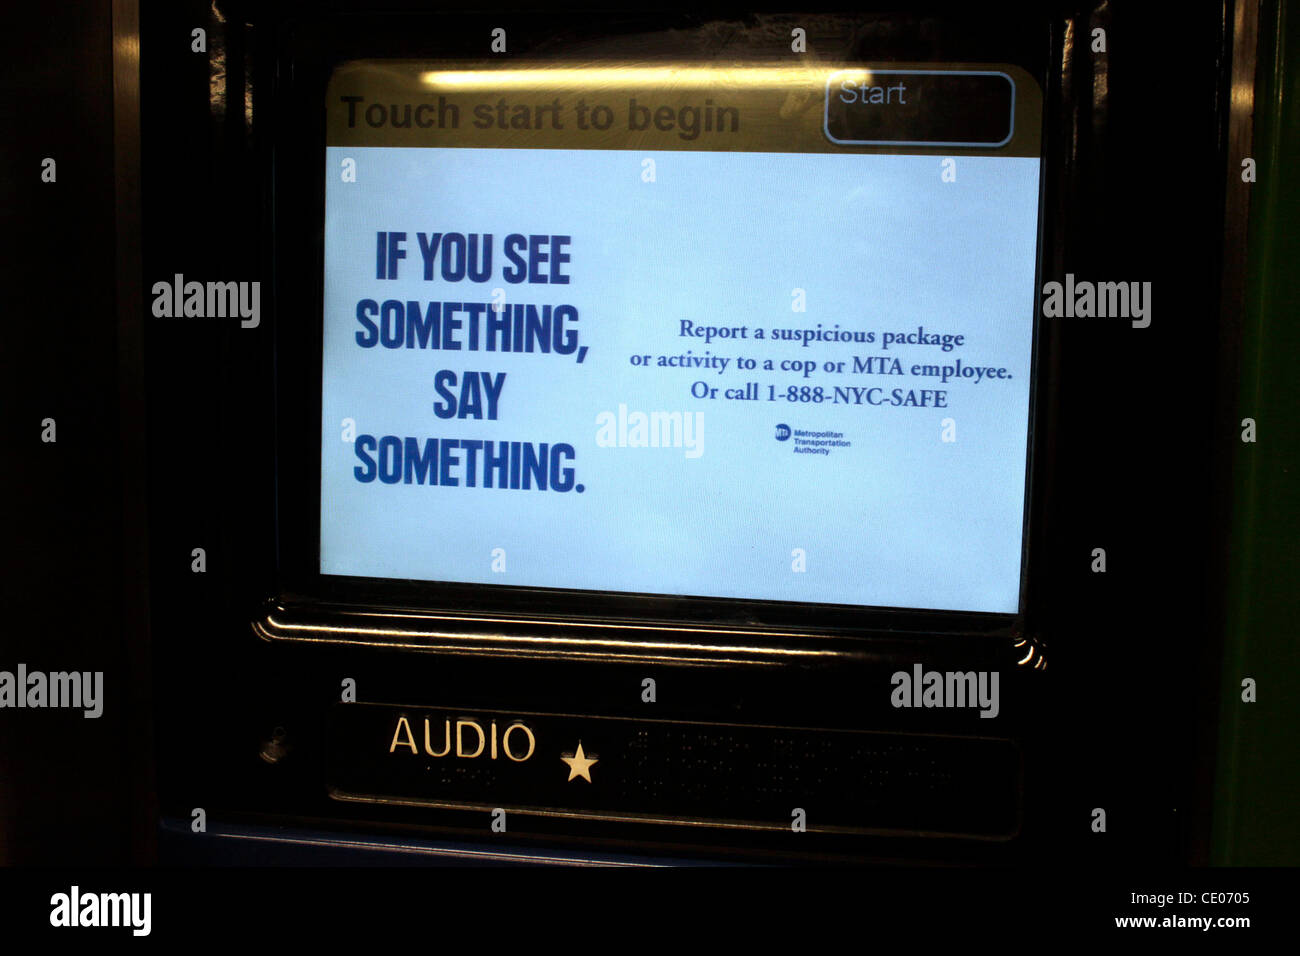 If You See Something Say Something security message in the subway. - Stock Image